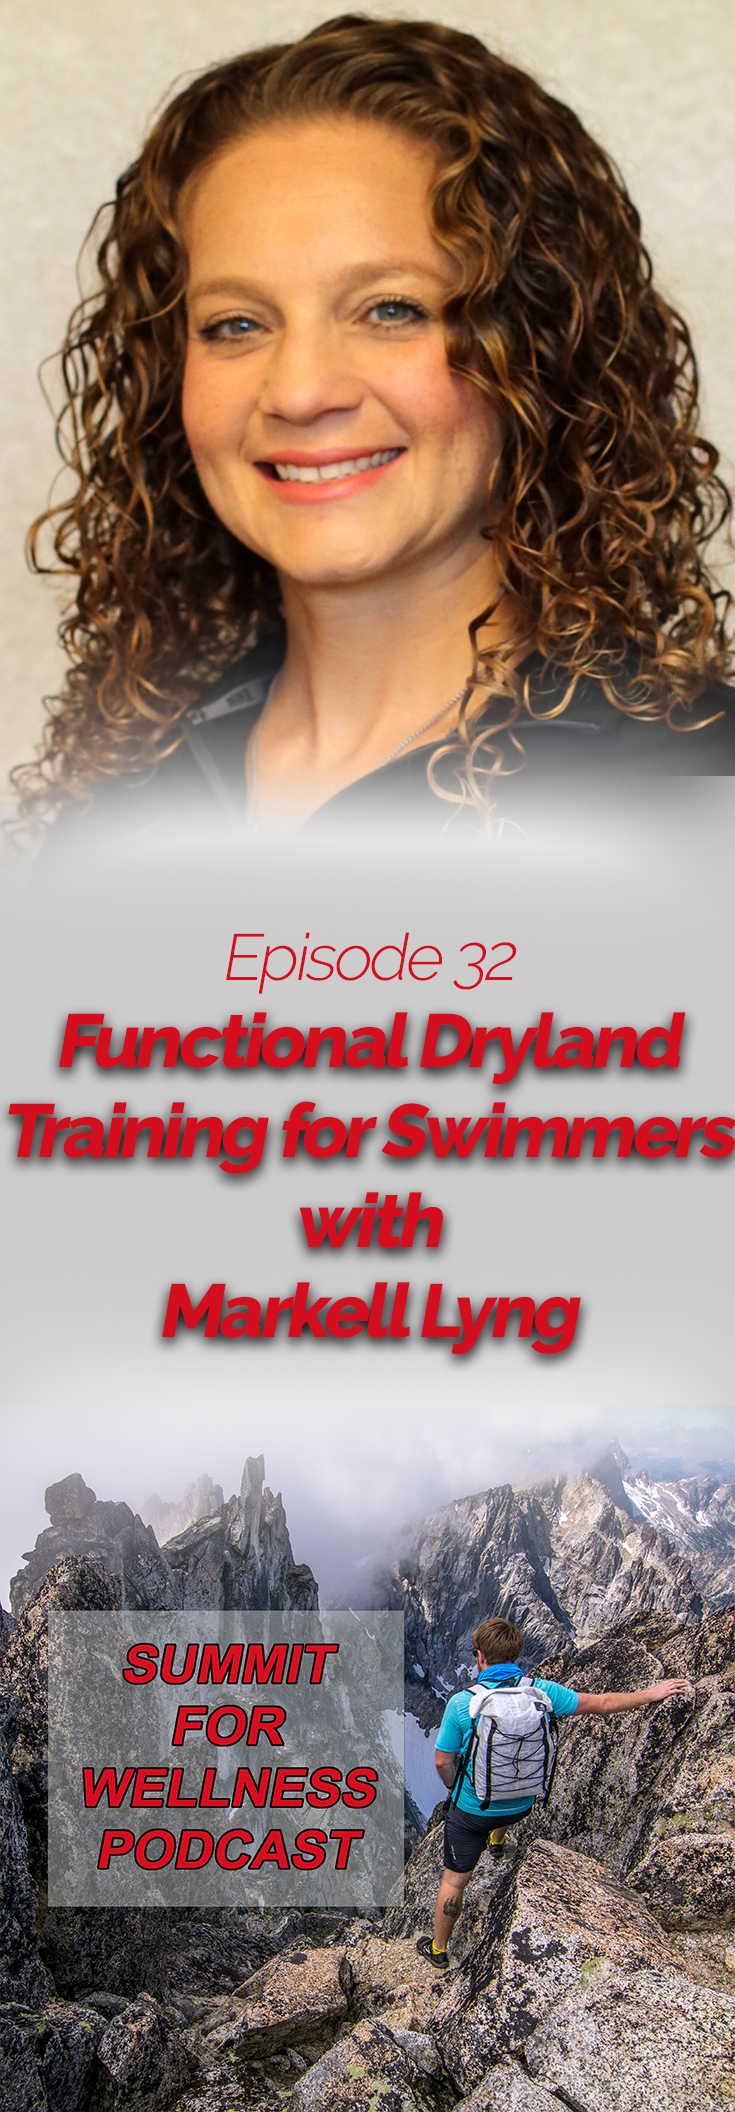 Markell Lyng discusses ways to improve dryland training for swimmers